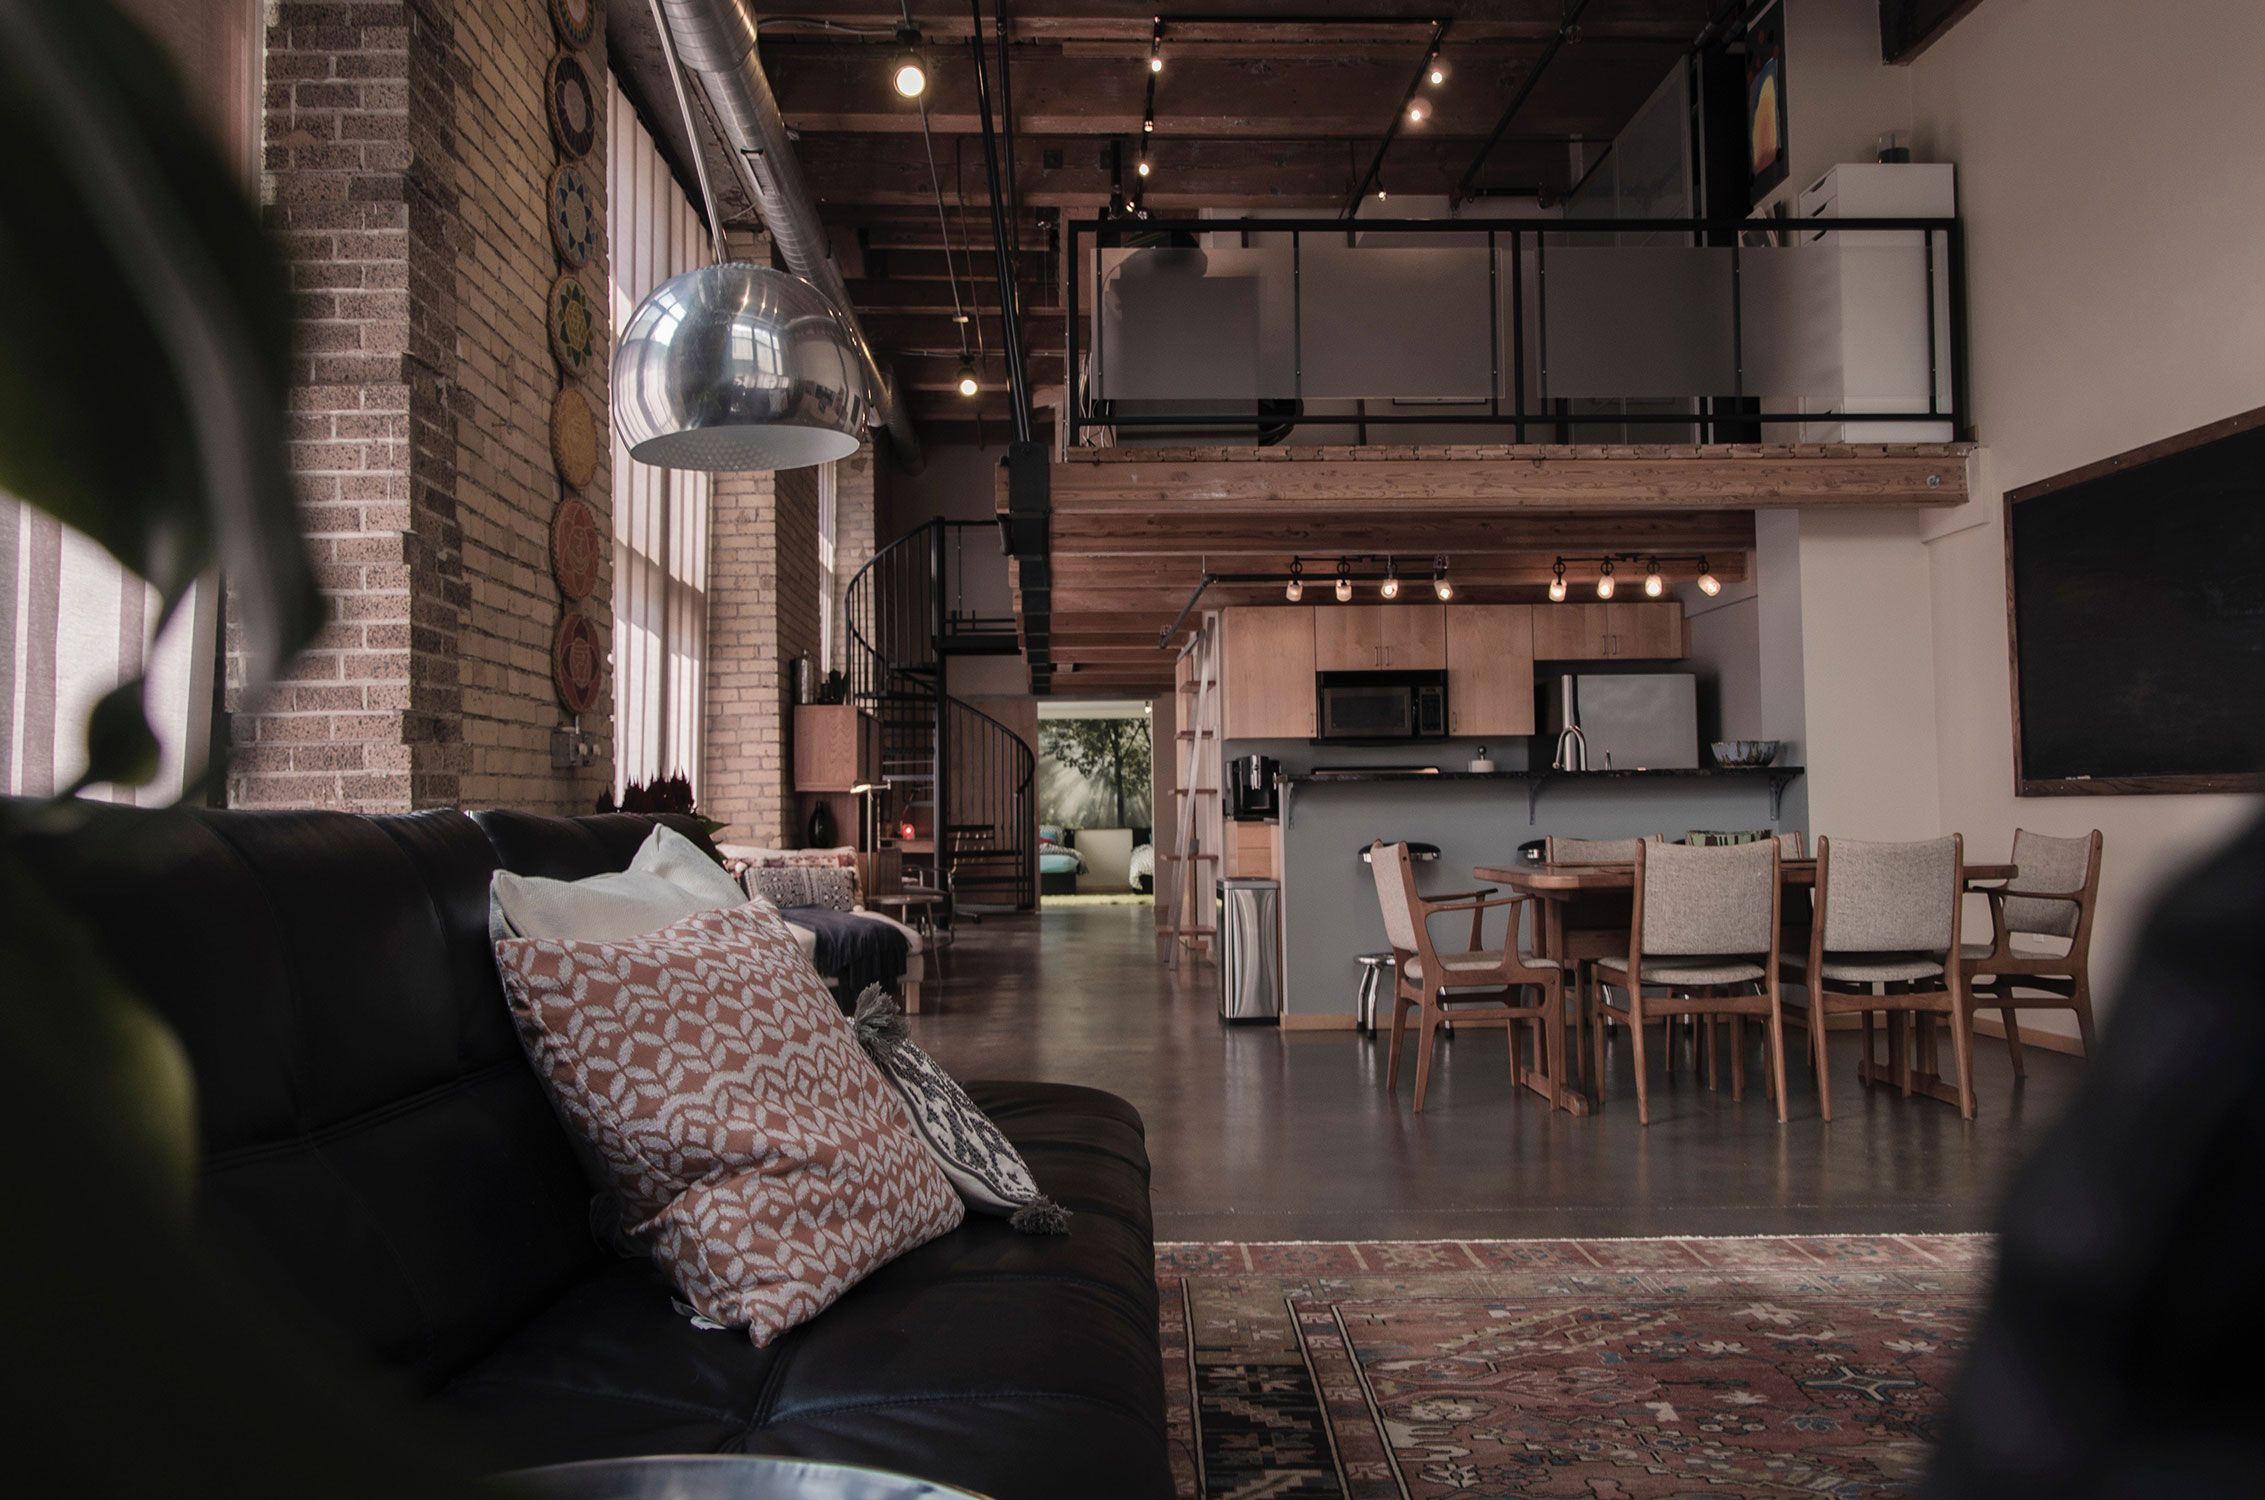 These Fabulous Tips For Loft Decorating Are Sure To Help You Turn That Large Space Into A Cozy Living Environment You Ll L Home Interior Design Loft Style Home